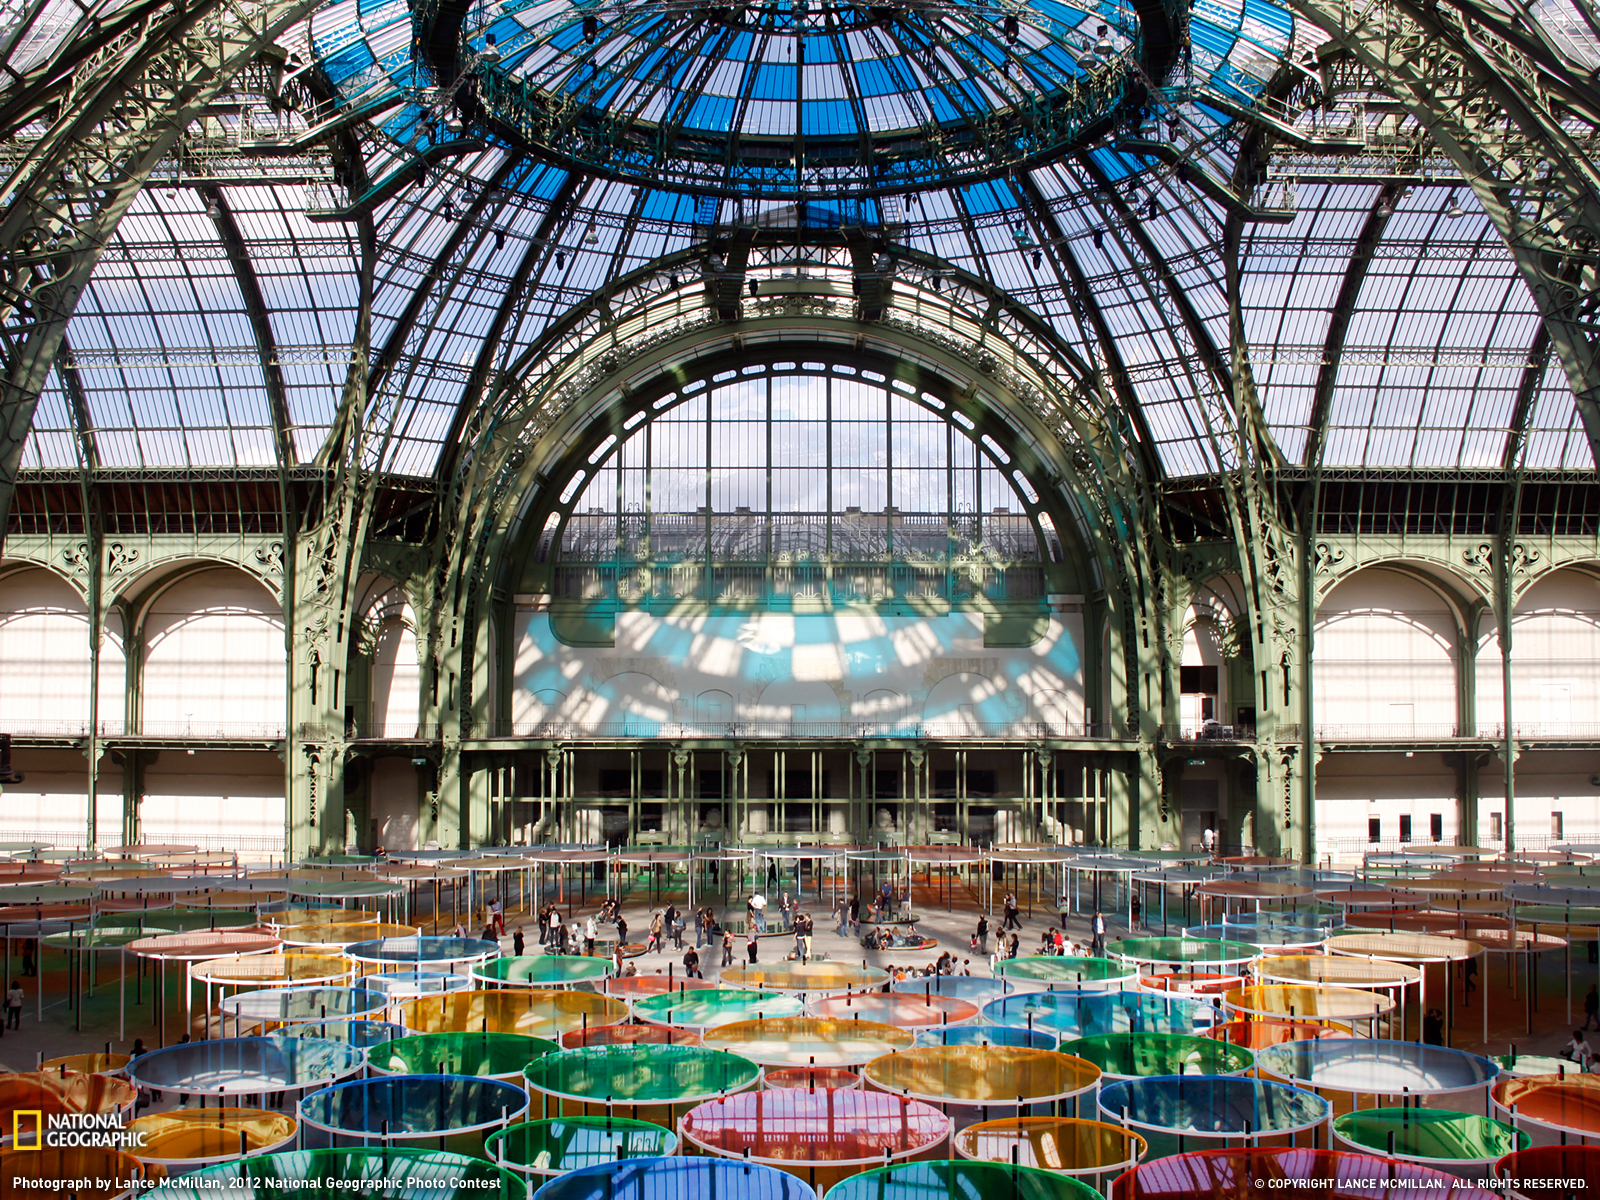 R novation programm e pour le grand palais paris - Grand palais expo horaires ...